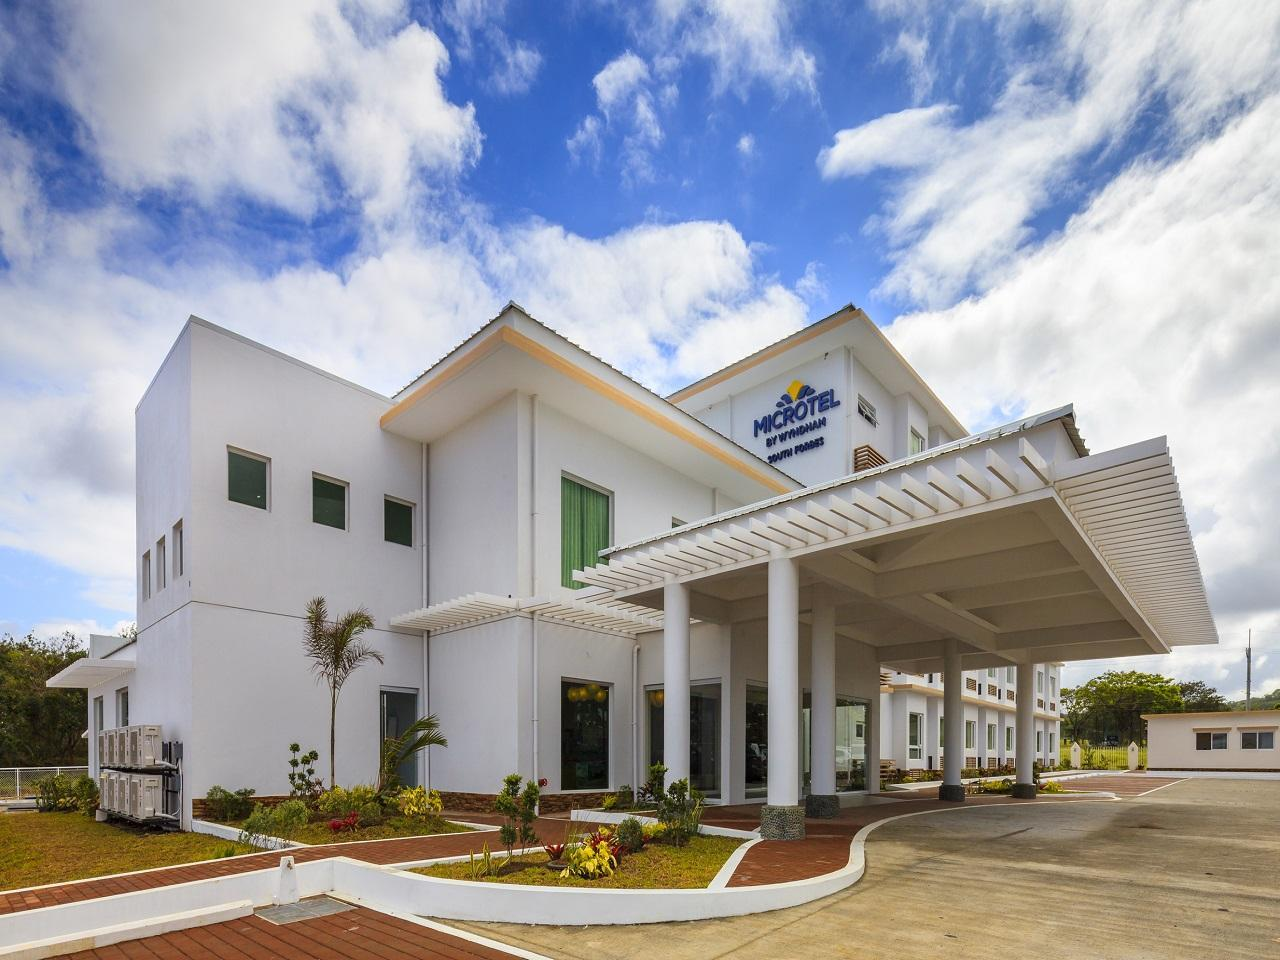 Microtel by Wyndham South Forbes - Nuvali Sta. Rosa, Biñan